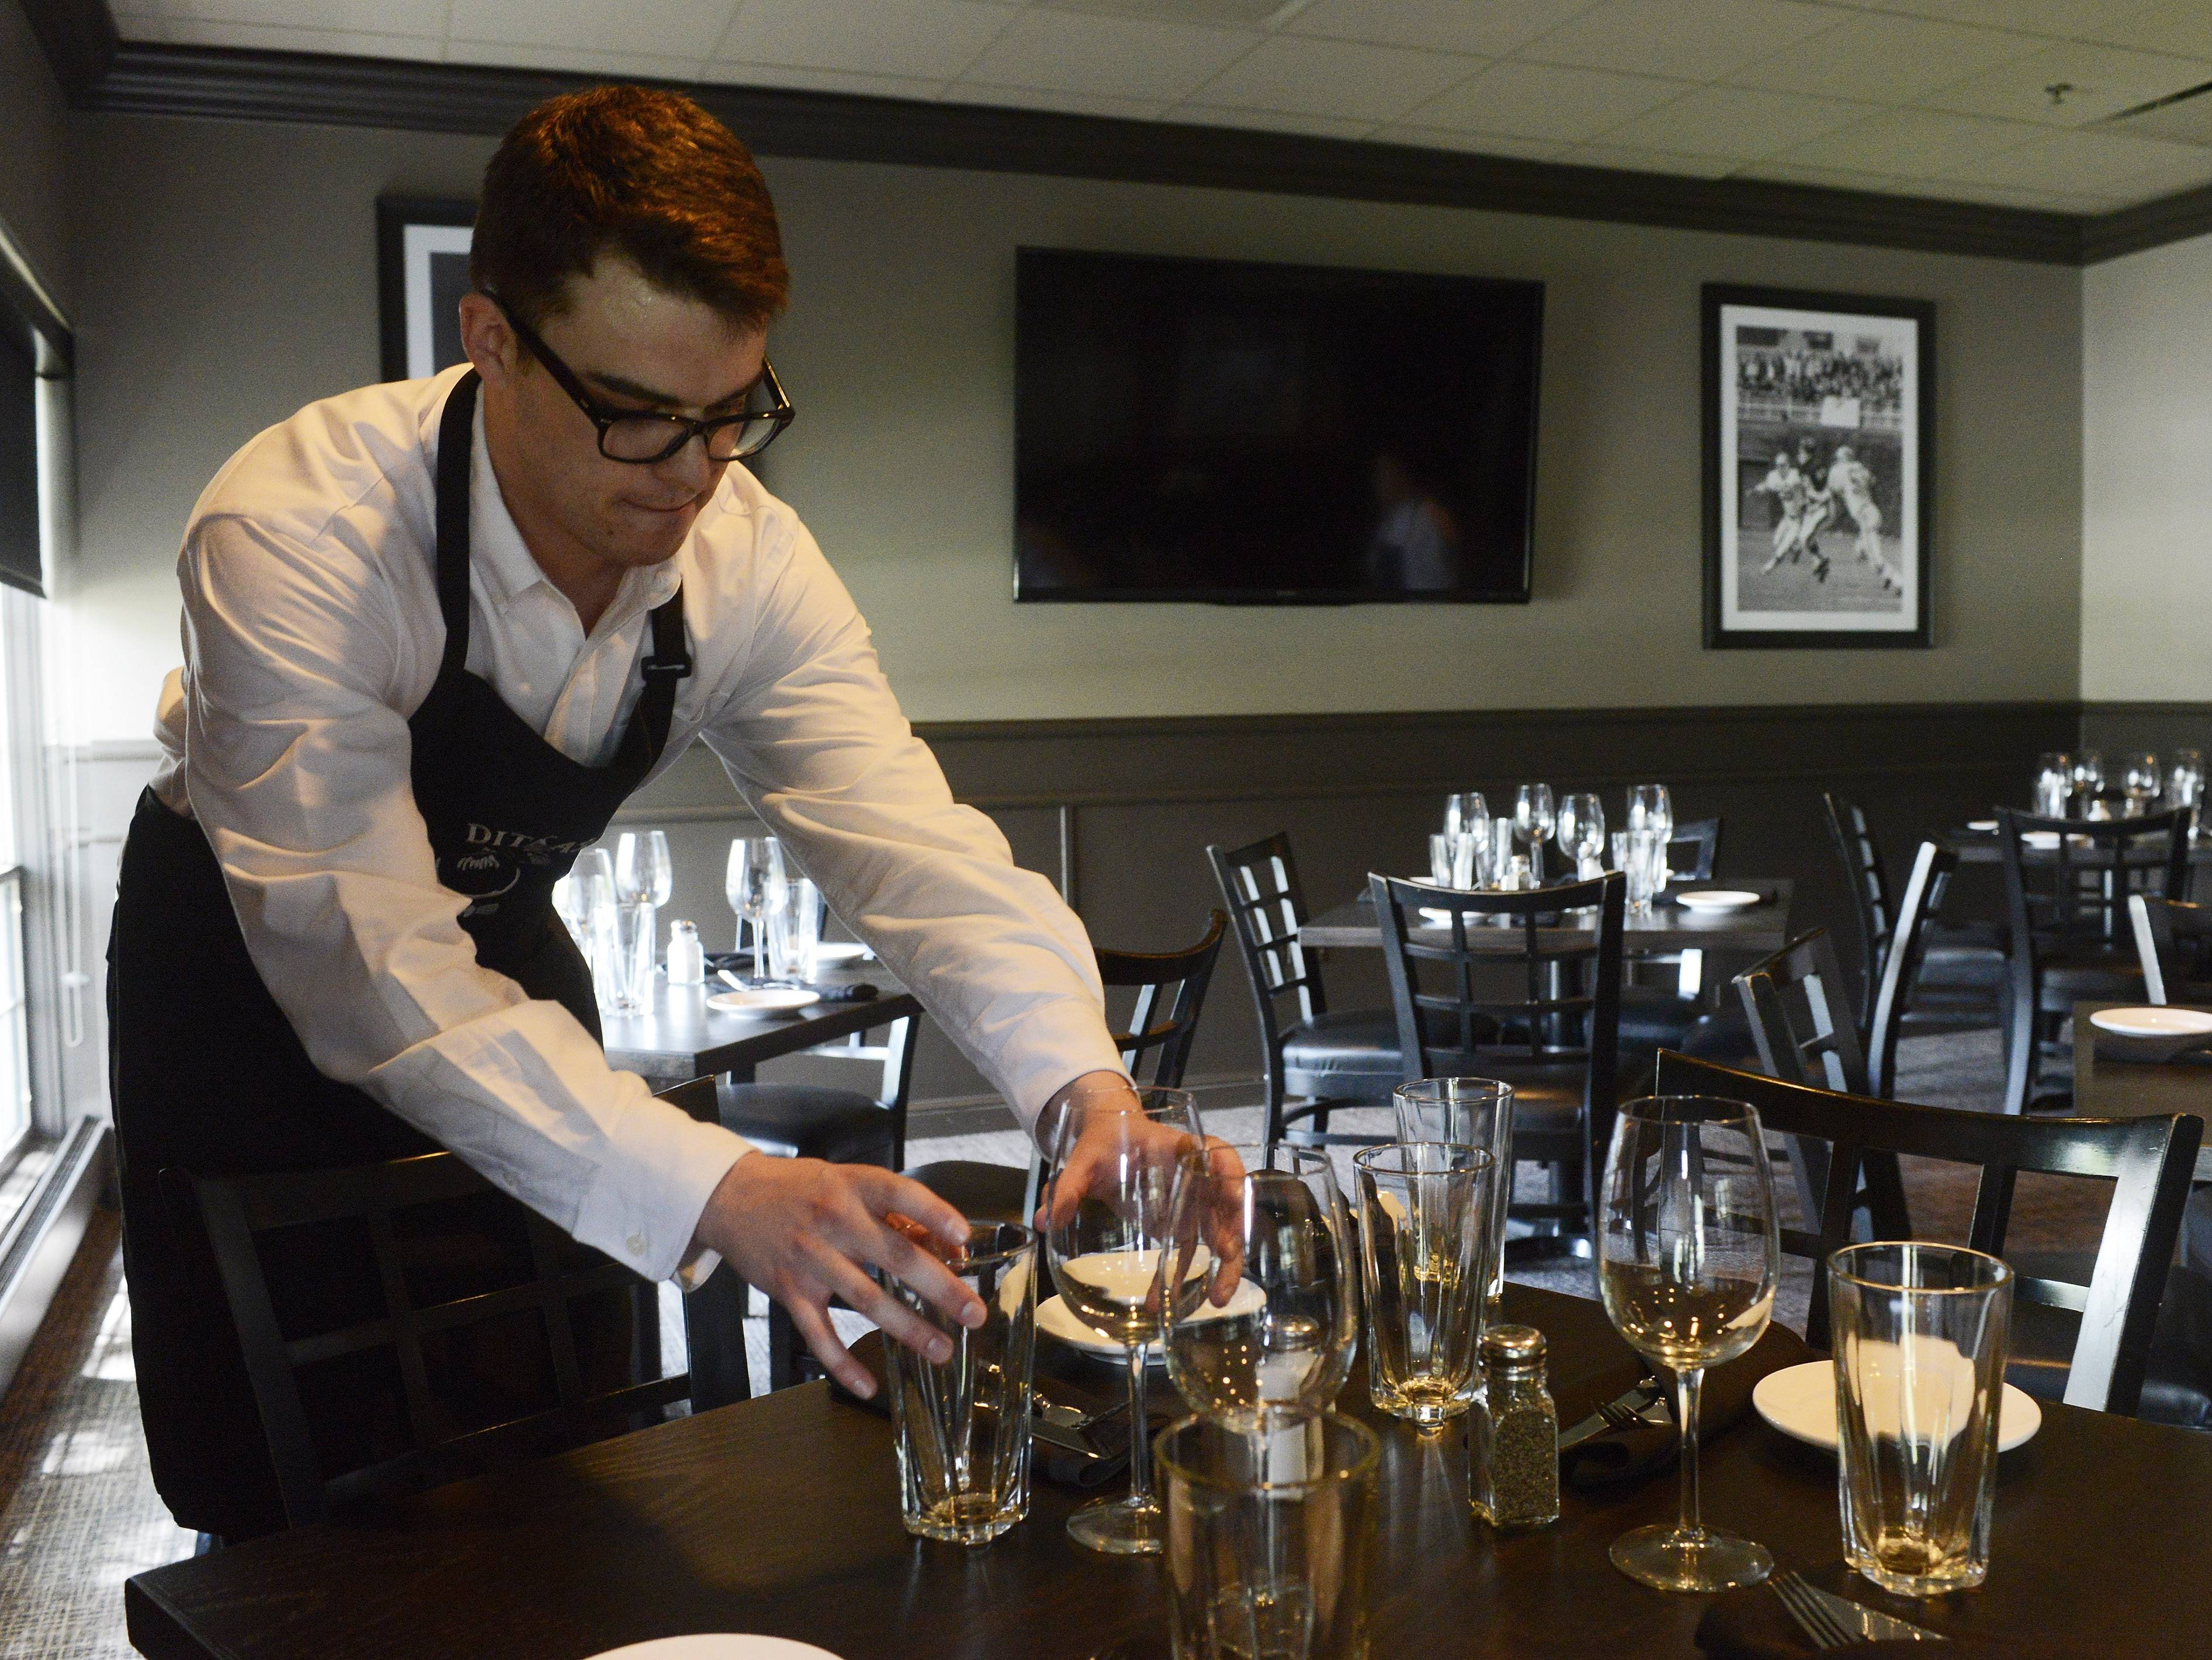 Service assistant Ed Curran sets a table at Ditka's Restaurant, which is having a private party Saturday night.